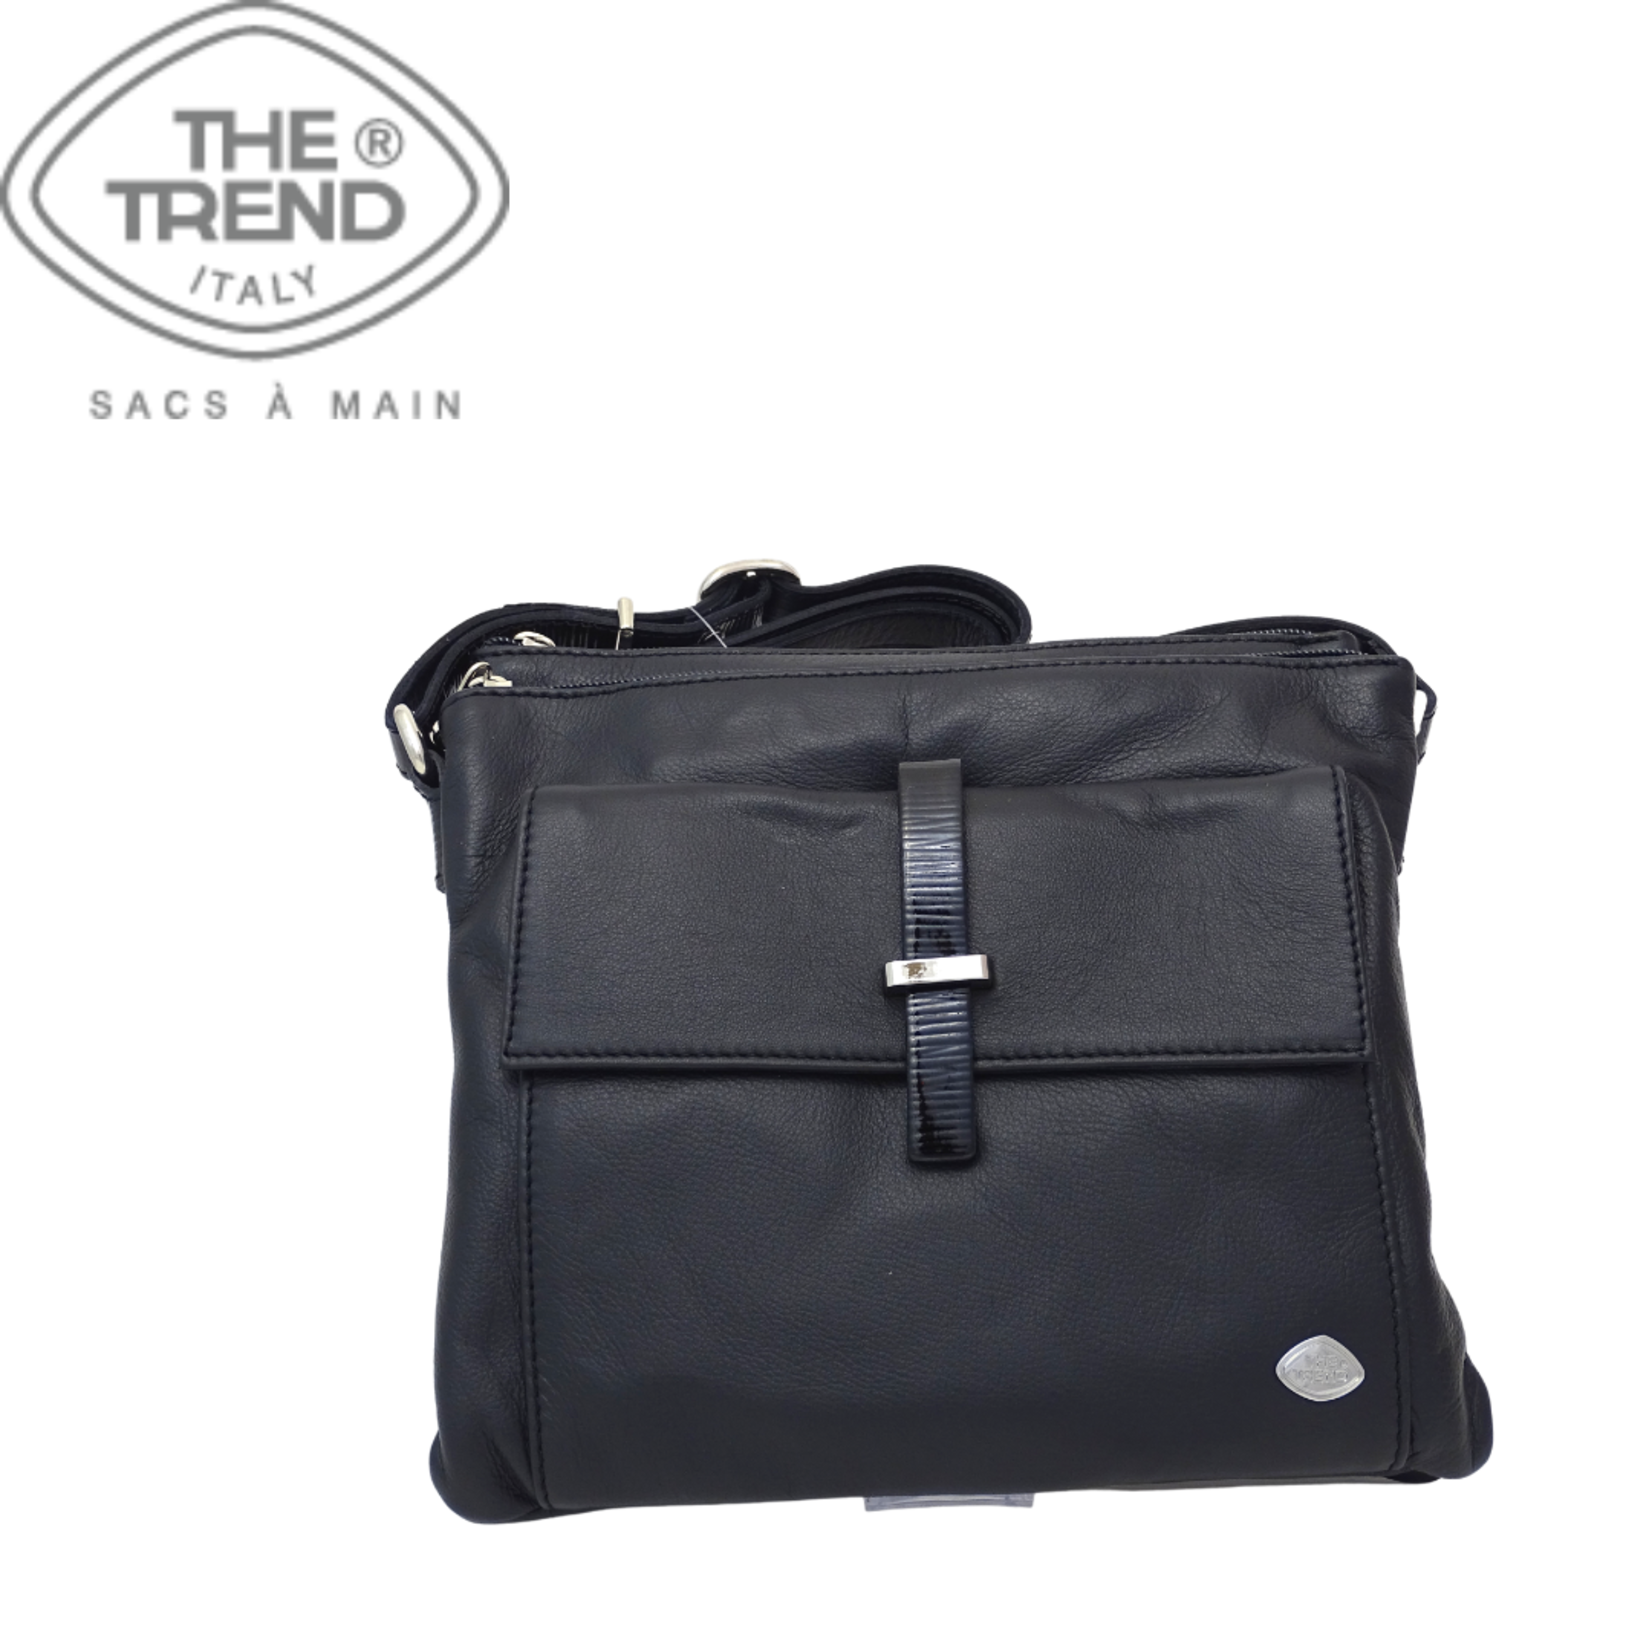 The Trend The Trend 378067 black